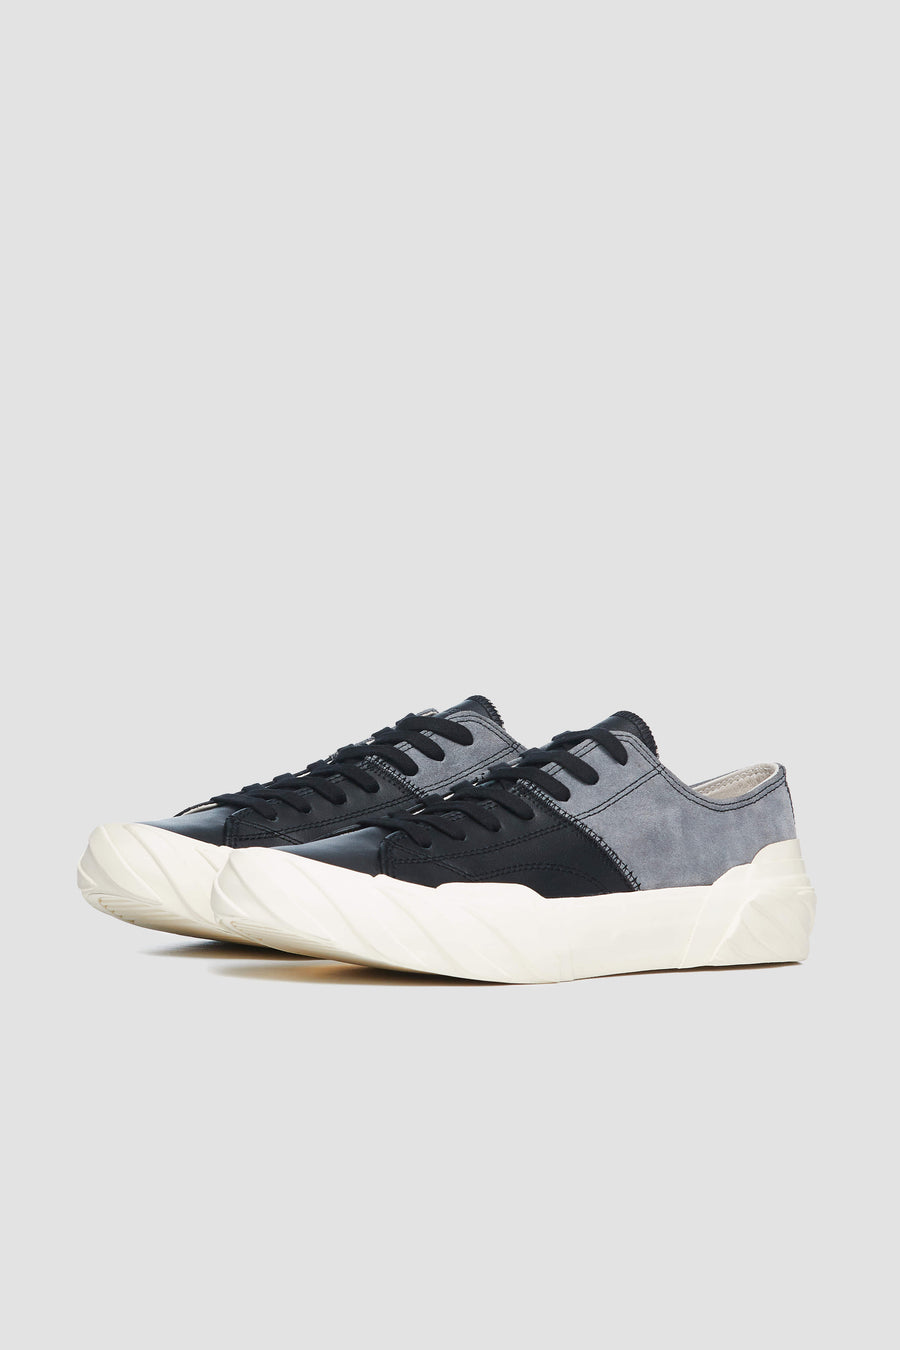 AGE - Low-Cut Leather and Suede Sneakers (grey/black)